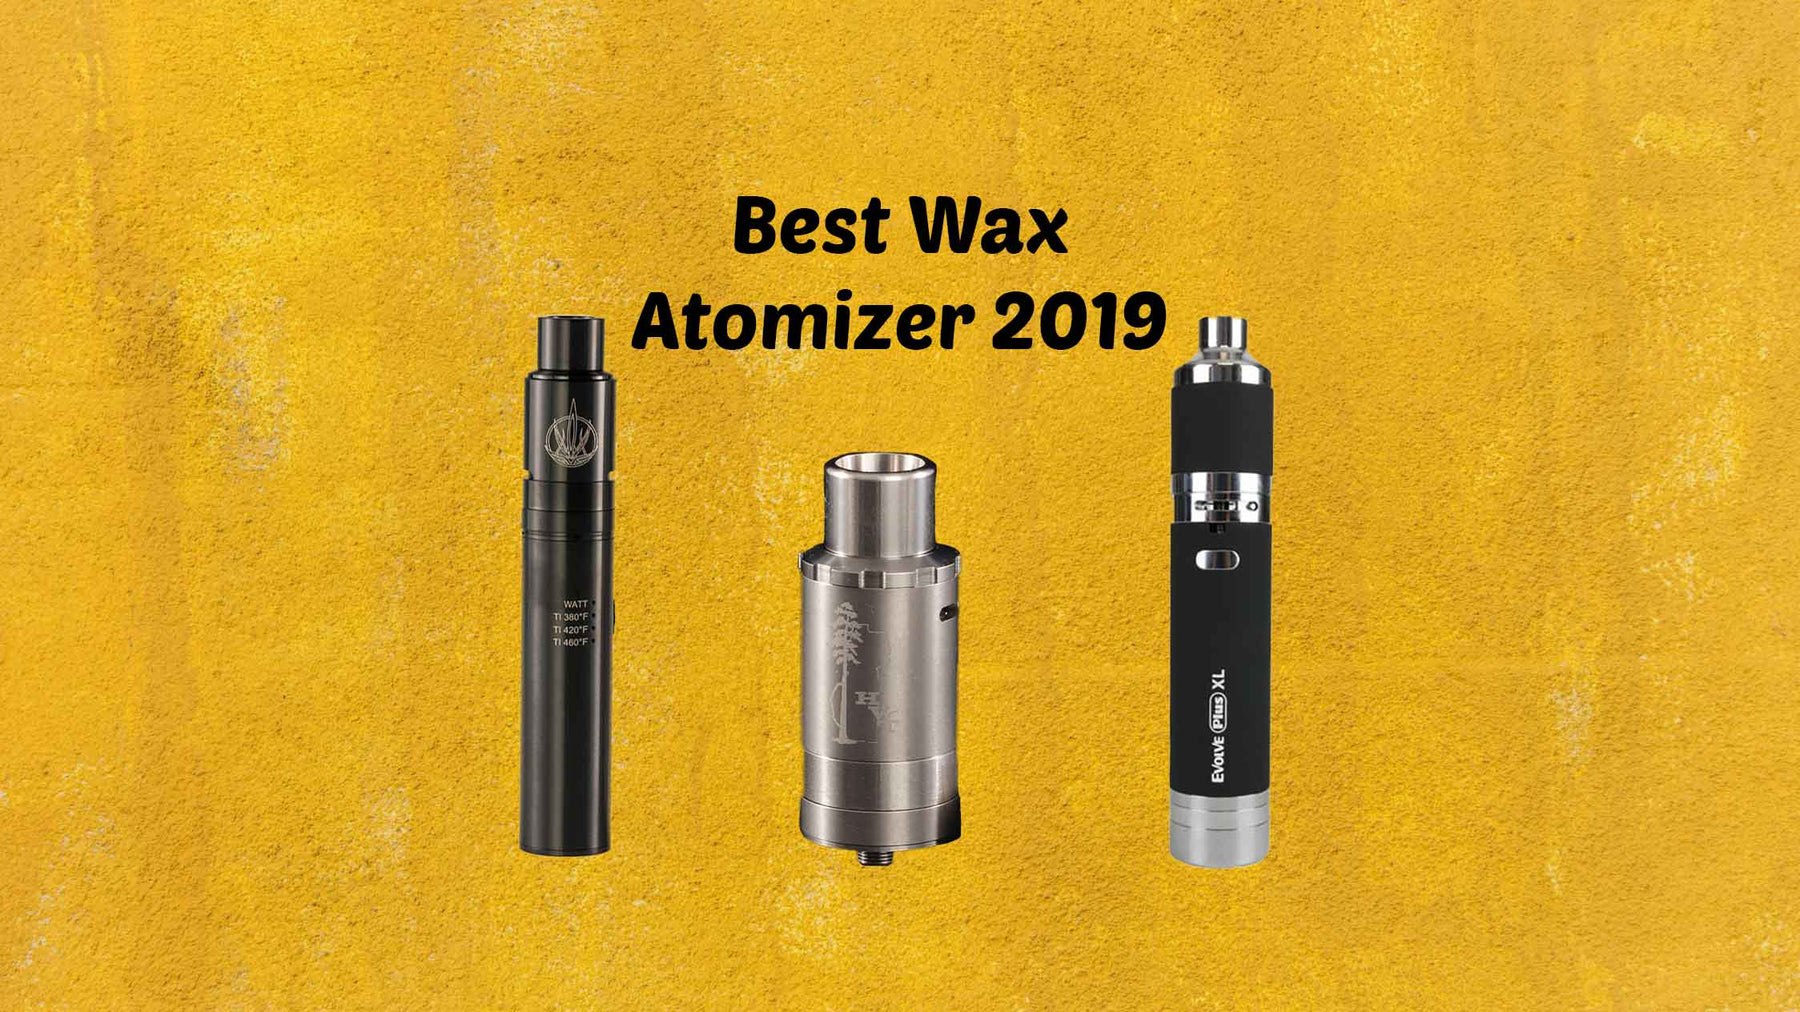 3 Best Wax Atomizers